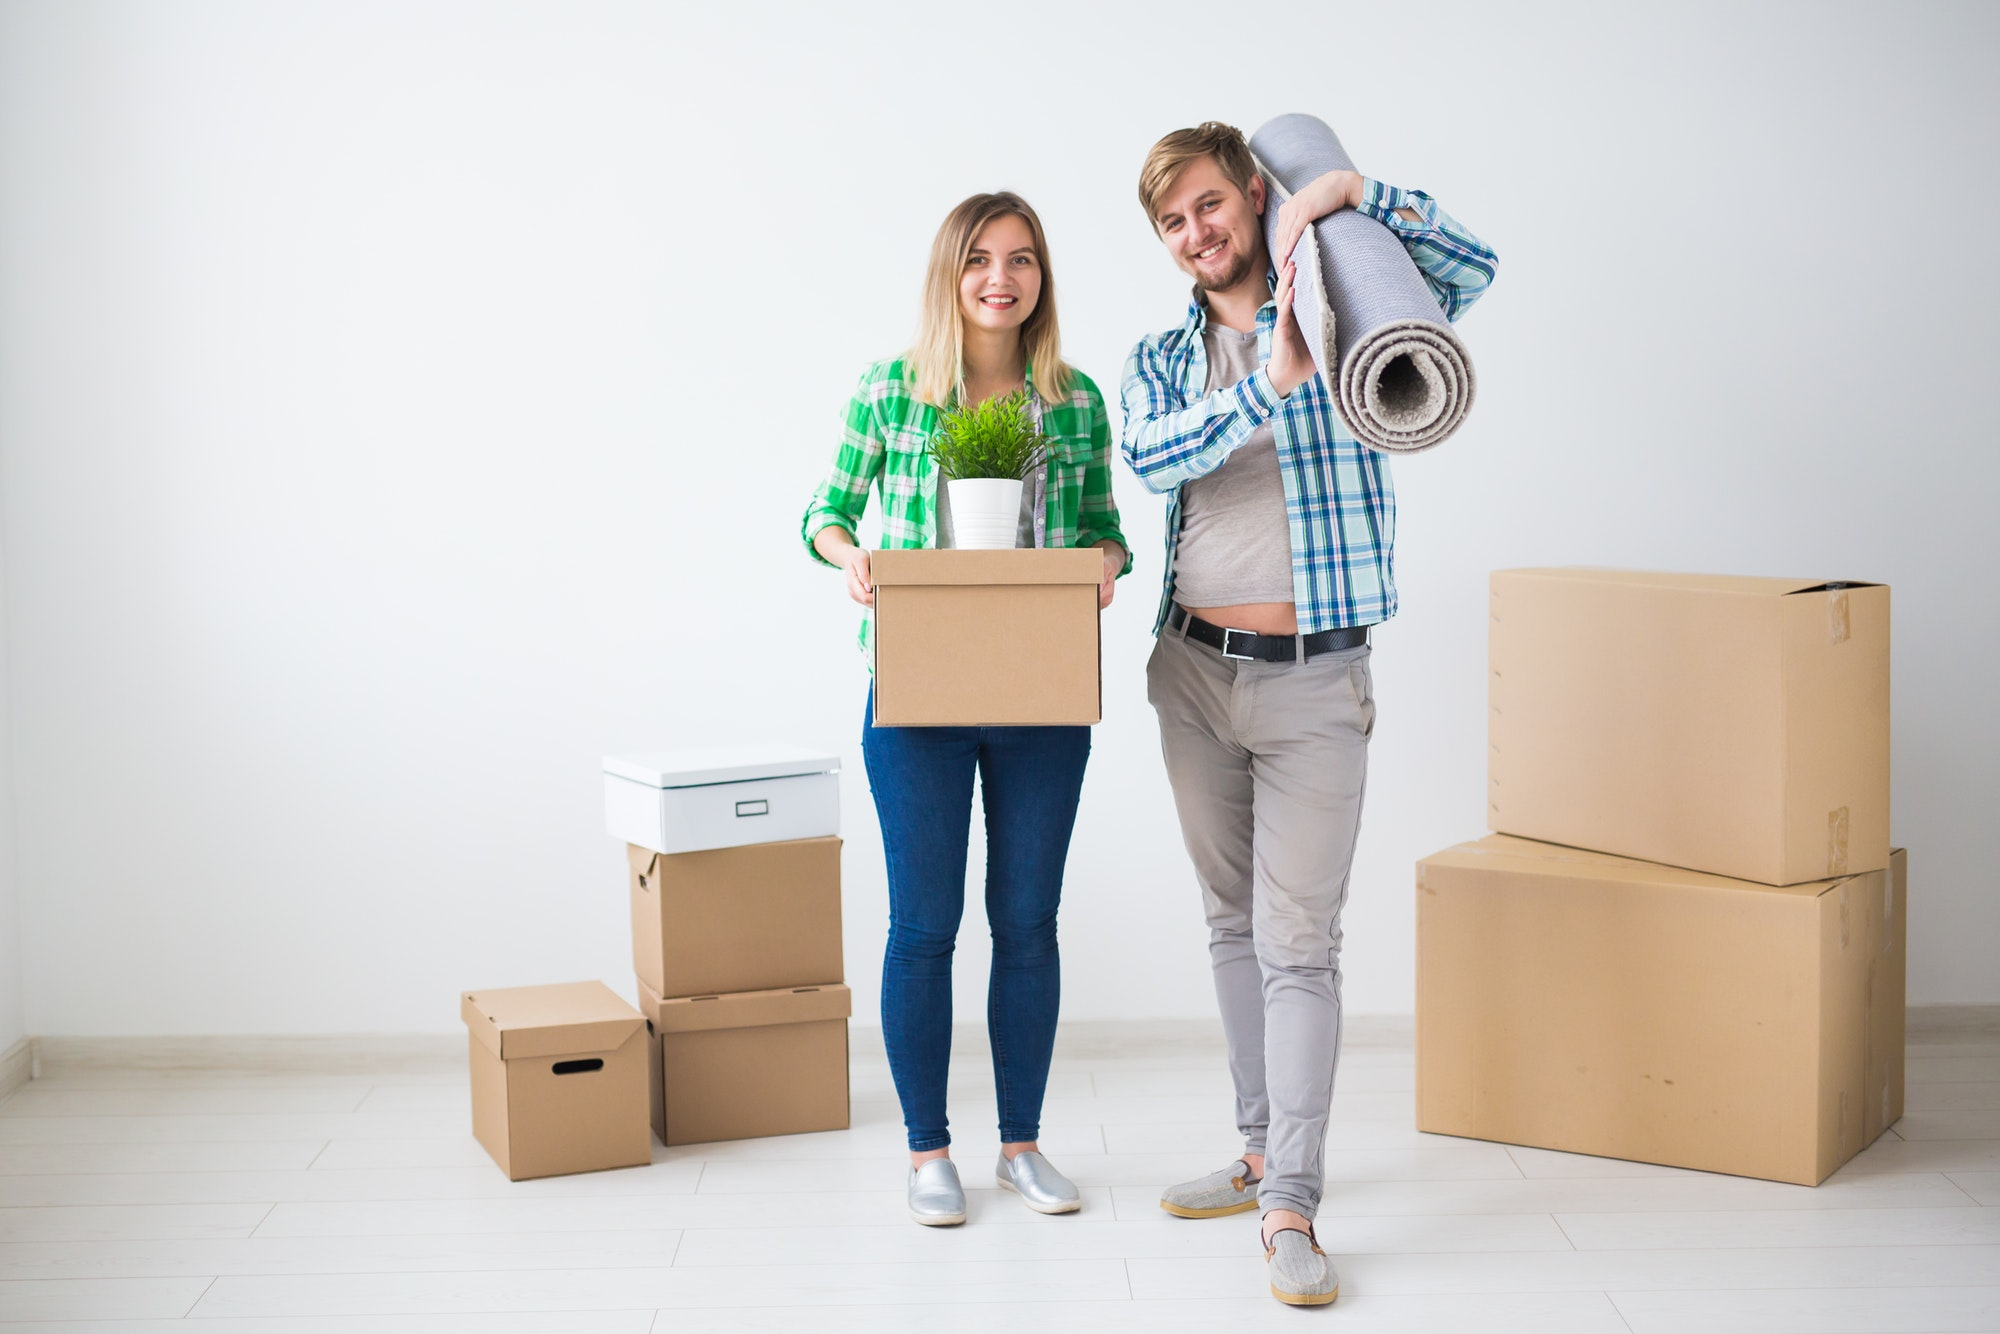 Family, new apartment and relocation concept - Young couple moving in new house